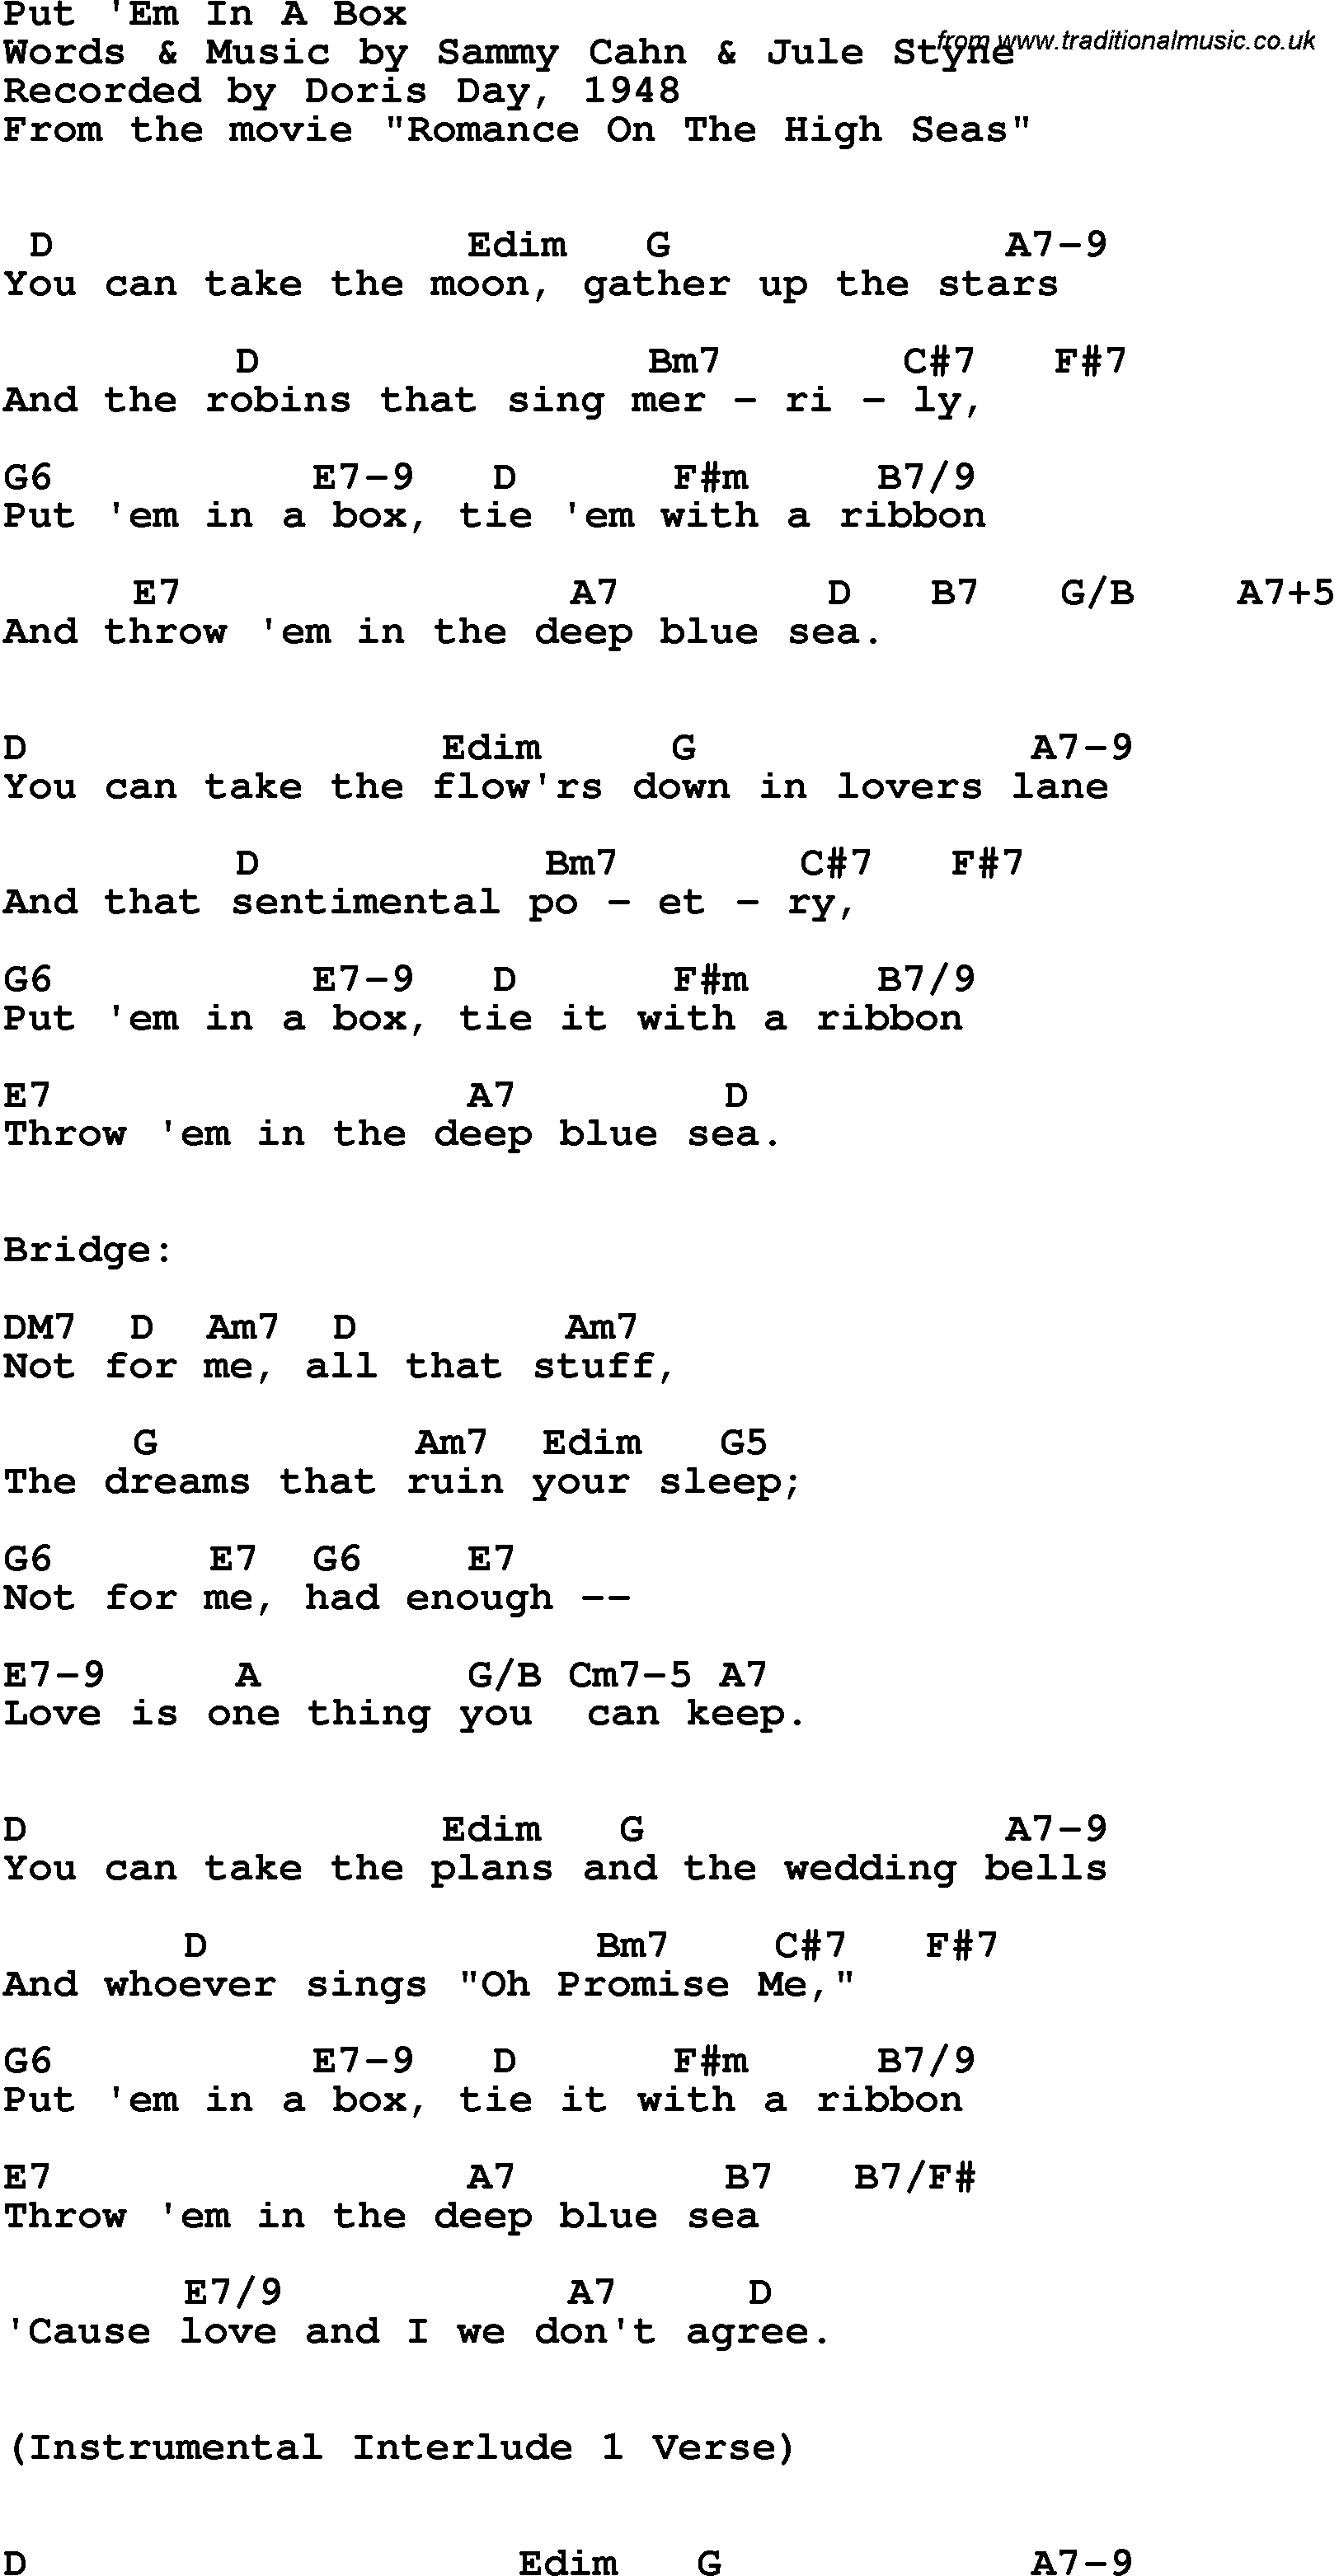 Song Lyrics With Guitar Chords For Put Em In A Box Doris Day 1948